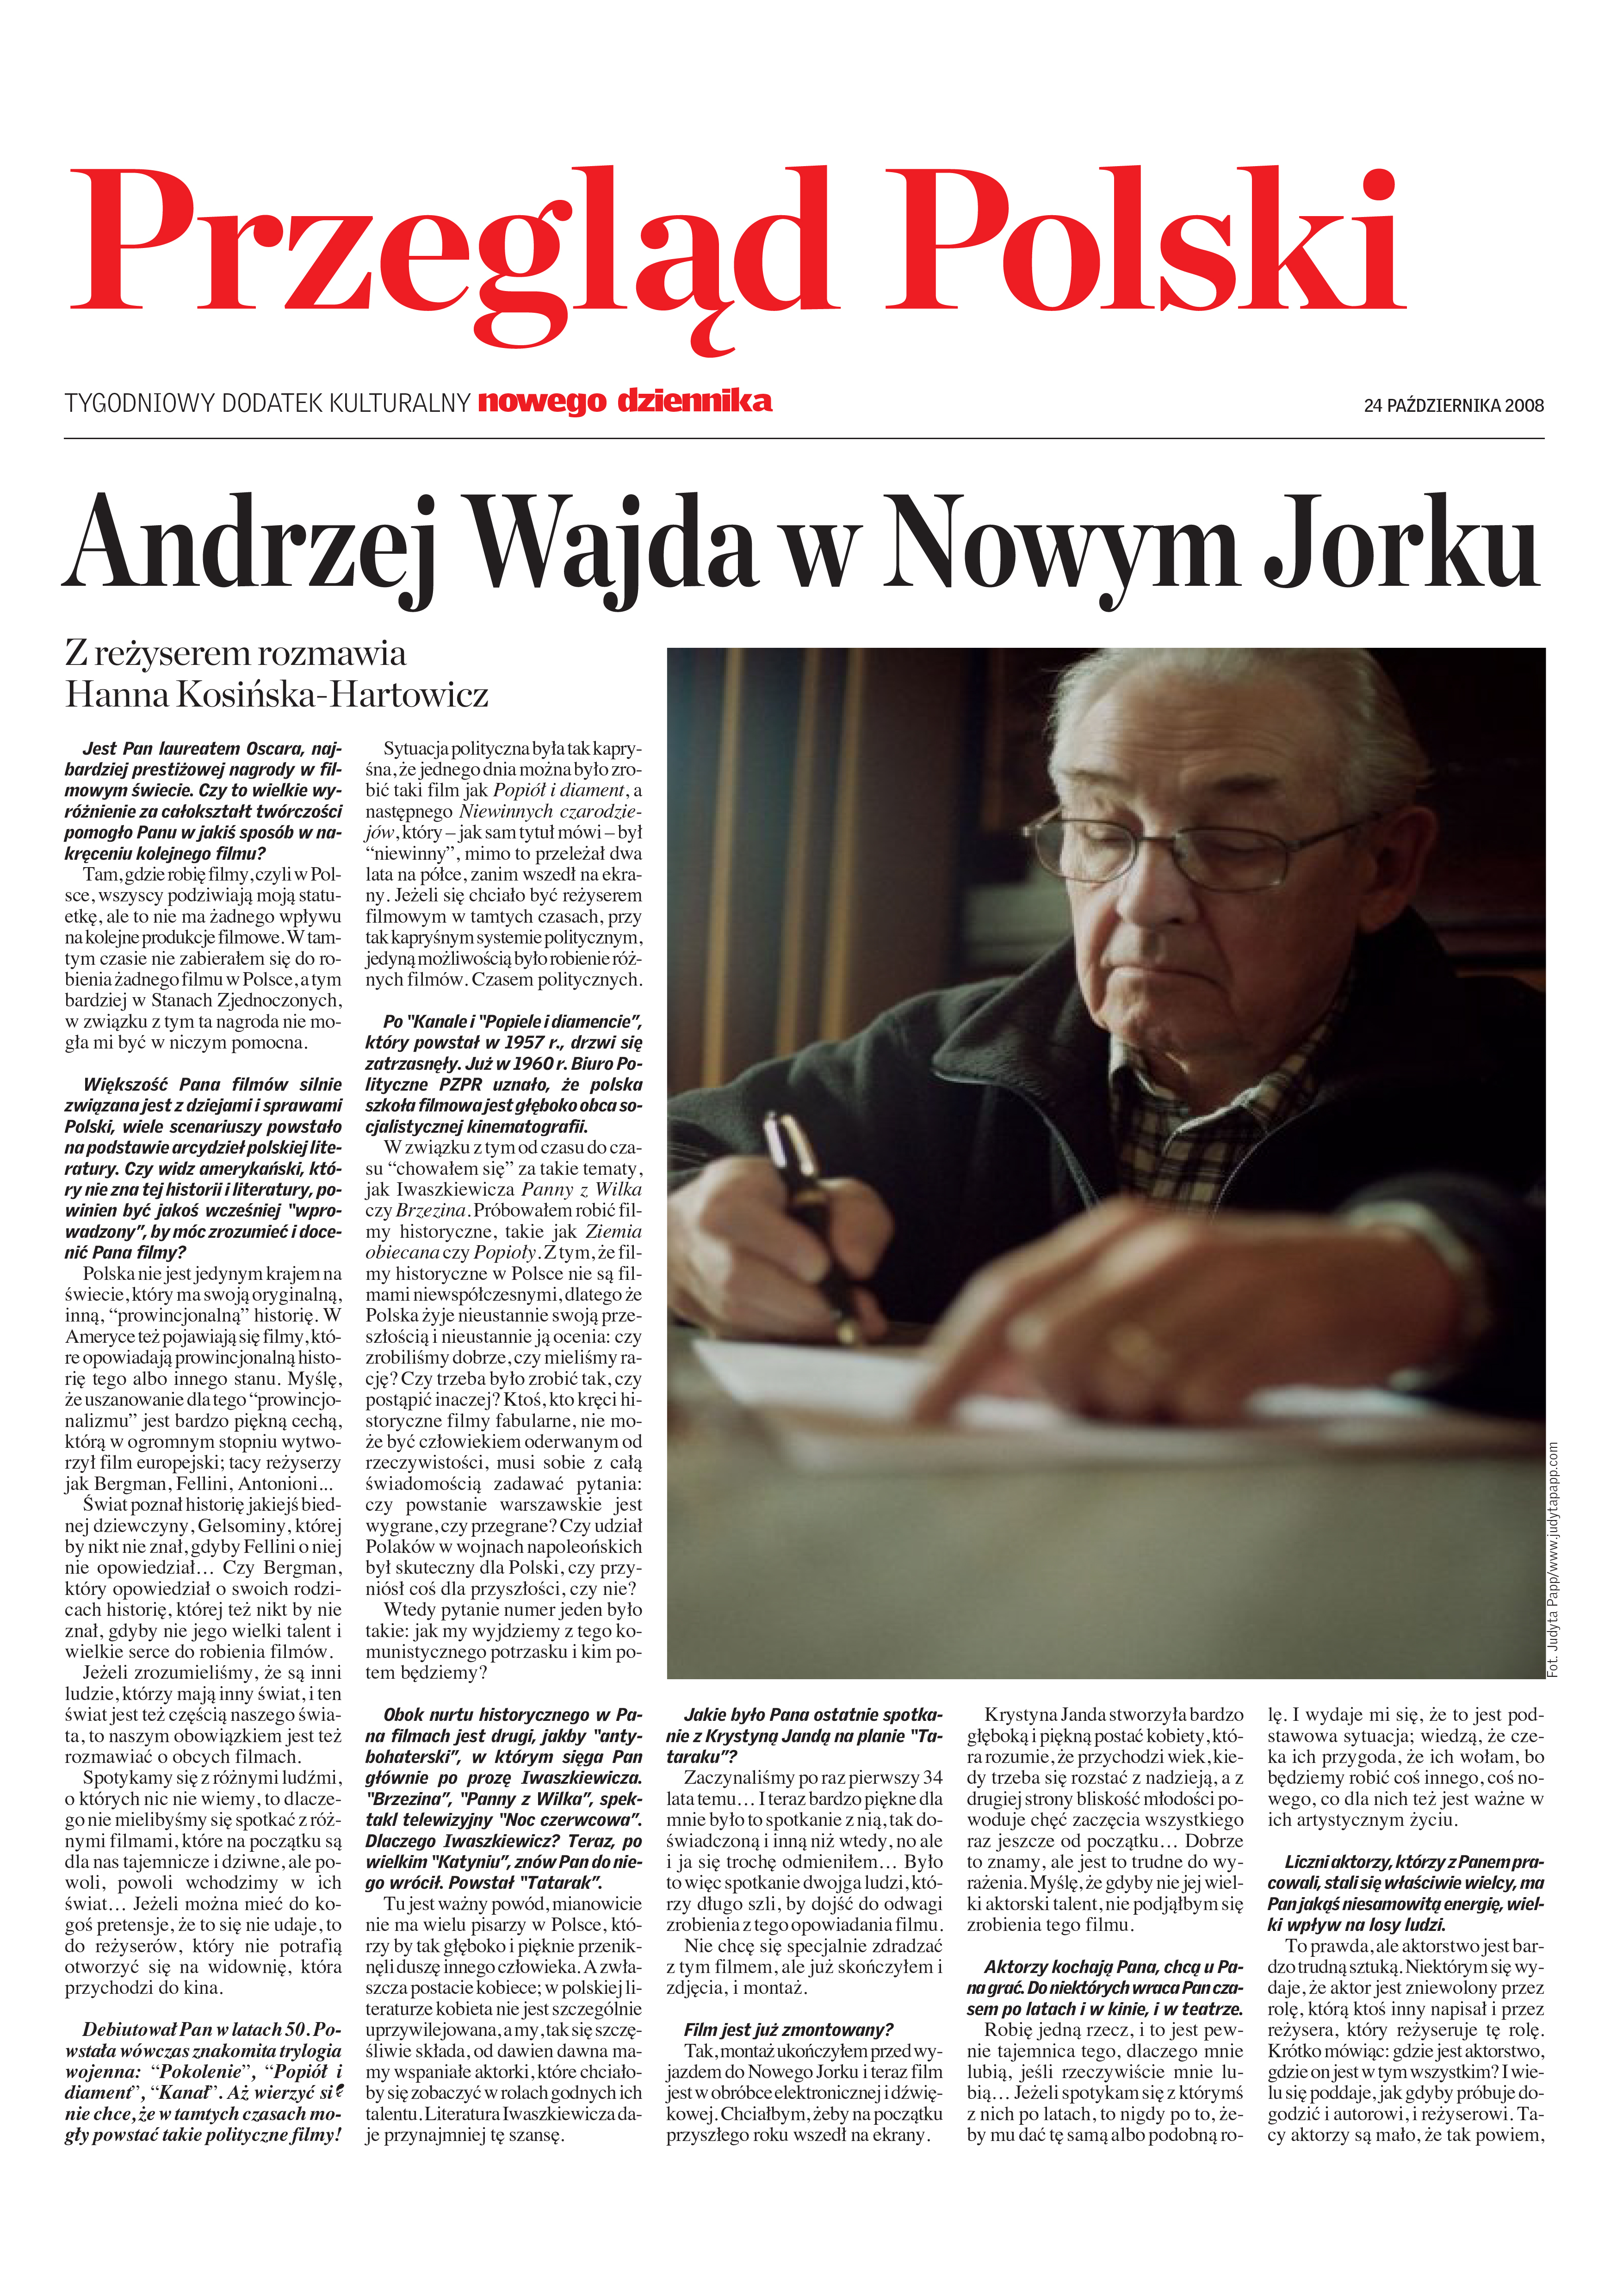 Publikacje Judyta Papp Official